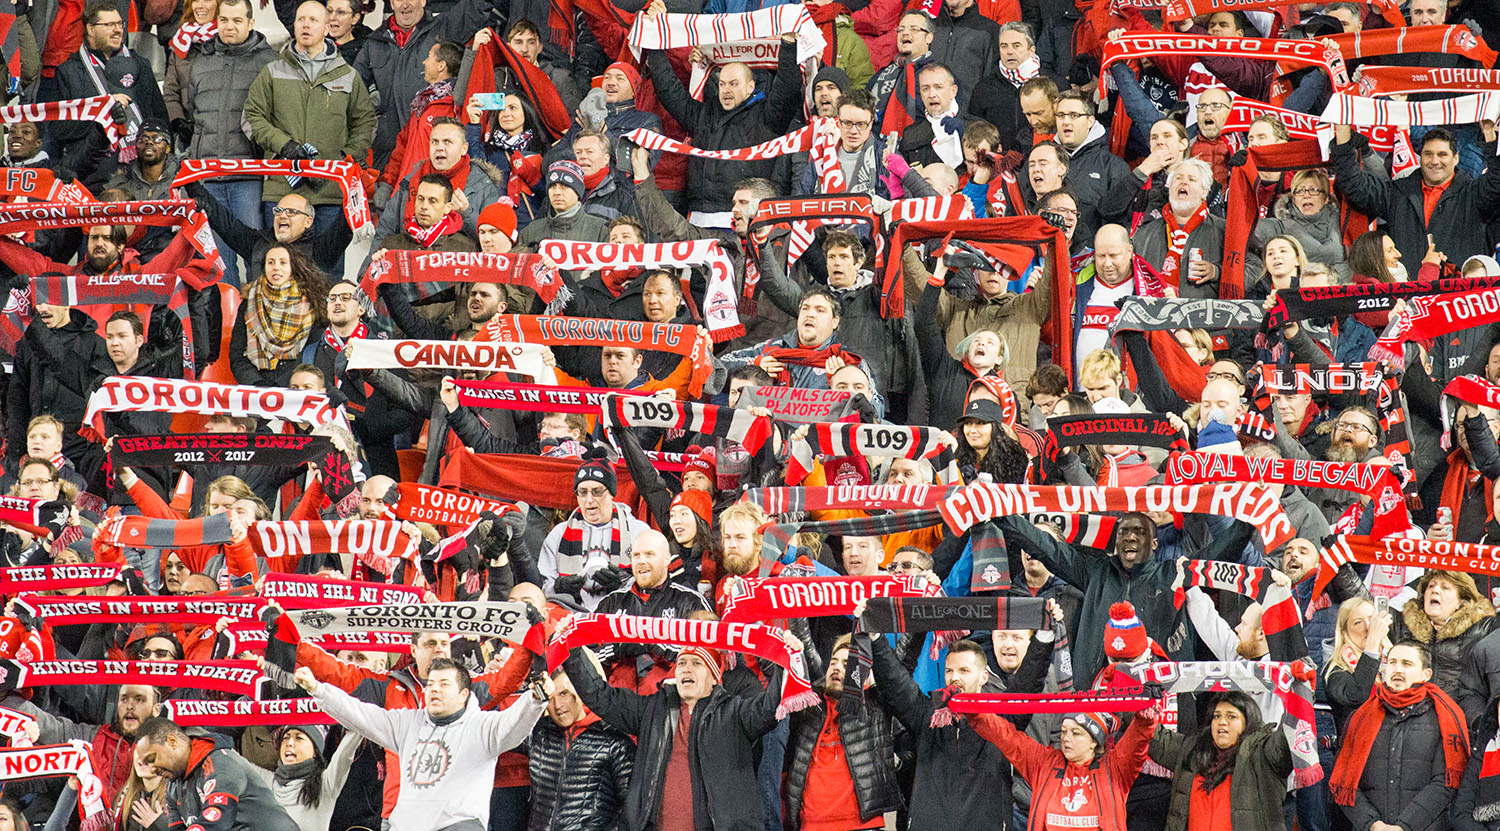 Toronto FC supporters in the south end of BMO Field raise the scarves up high during the national anthem on November 29, 2017.Image by Dennis Marciniak of denMAR Media.